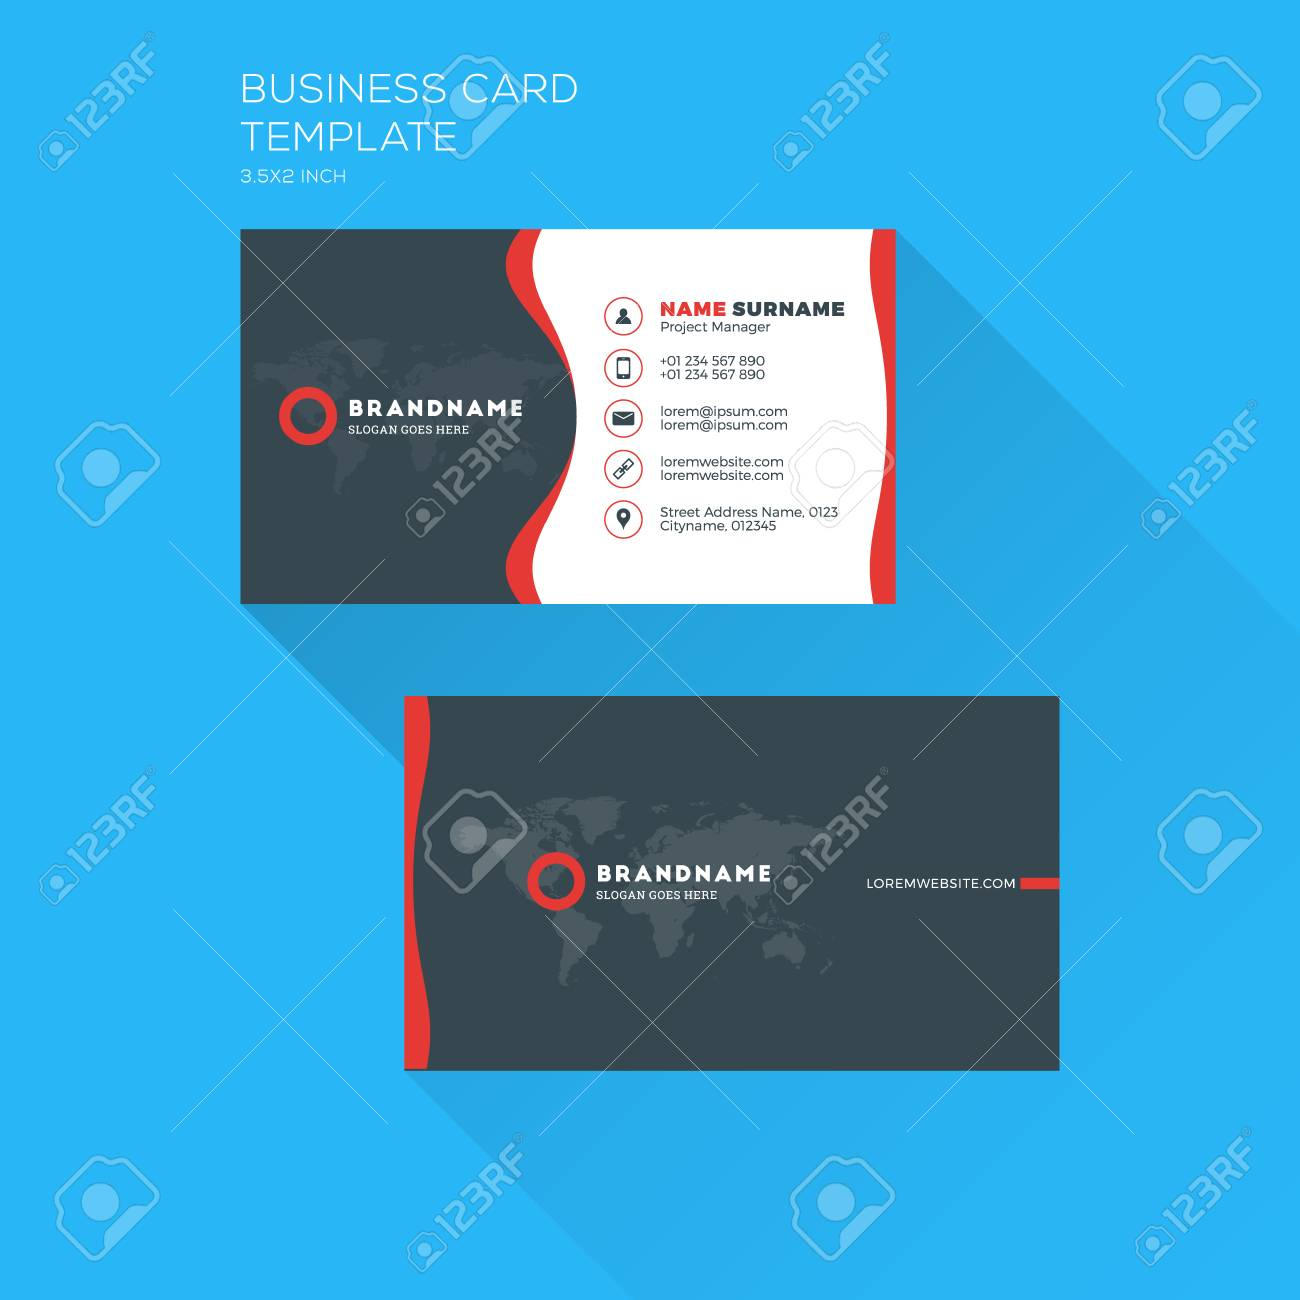 Corporate business card print template personal visiting card corporate business card print template personal visiting card with company clean flat design flashek Image collections